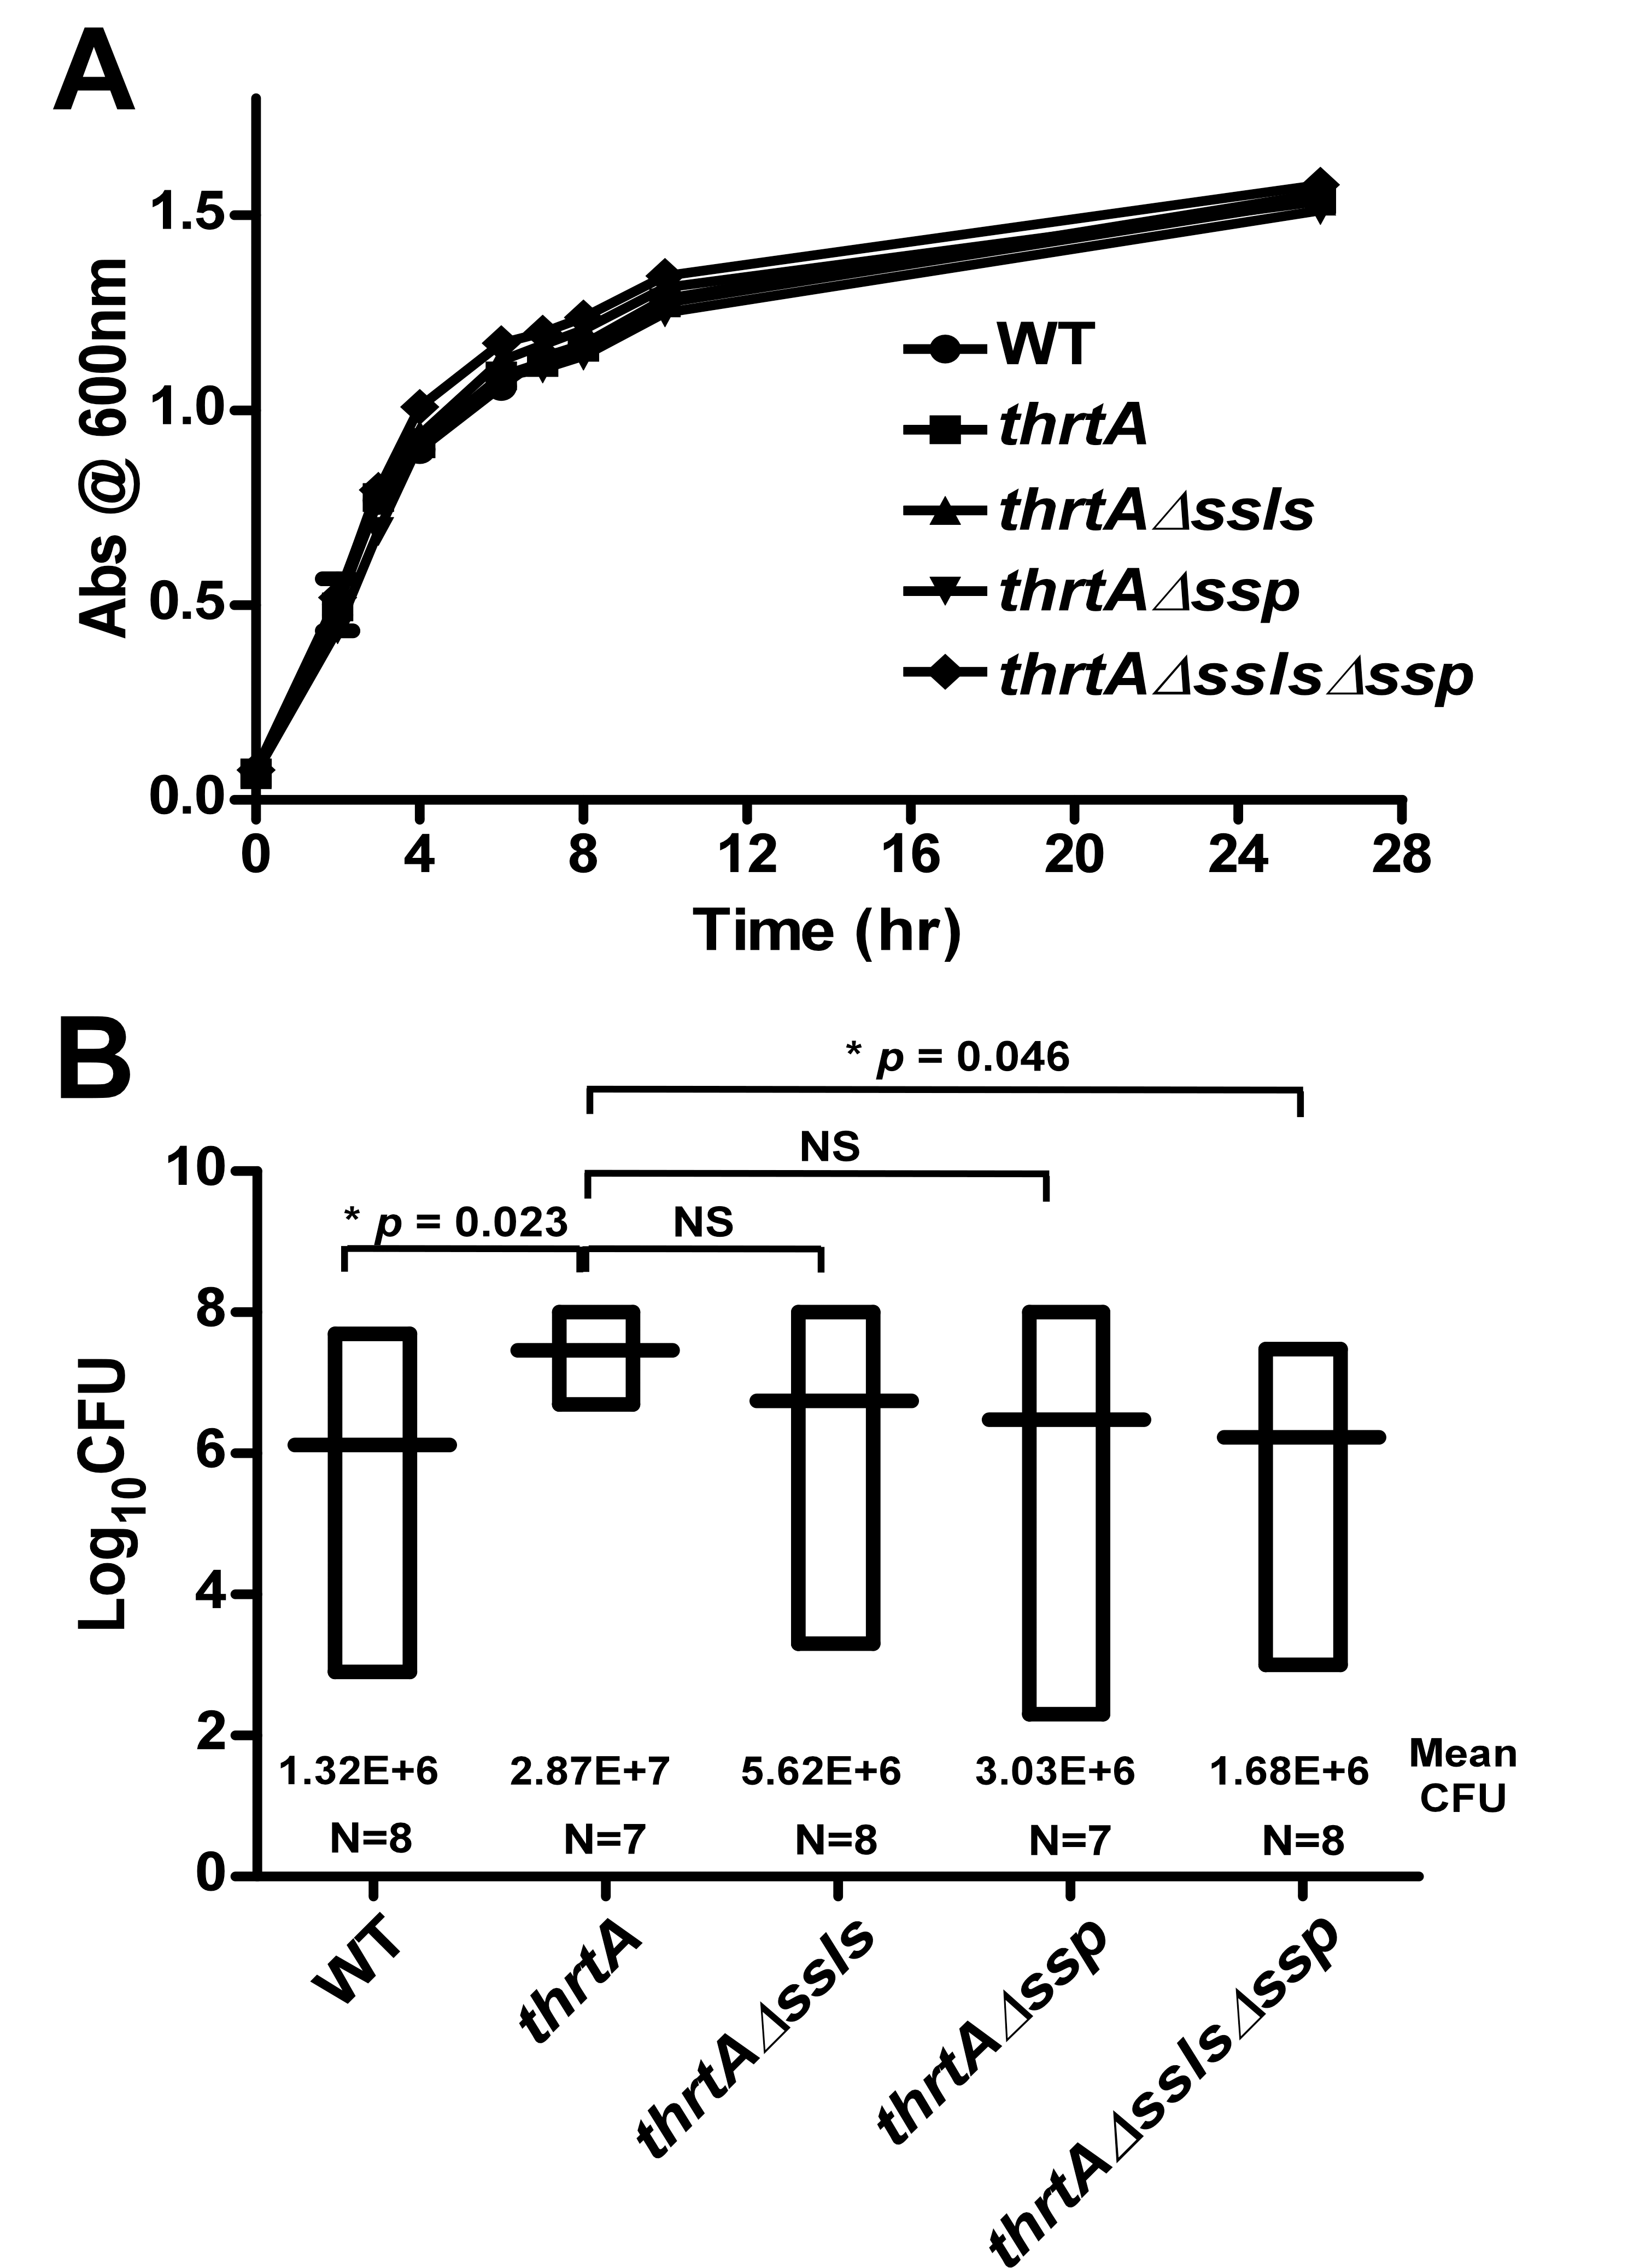 Ssls1-11 and Ssp are responsible for the liver-specific hyper-virulence of <i>hrtA</i> mutants.